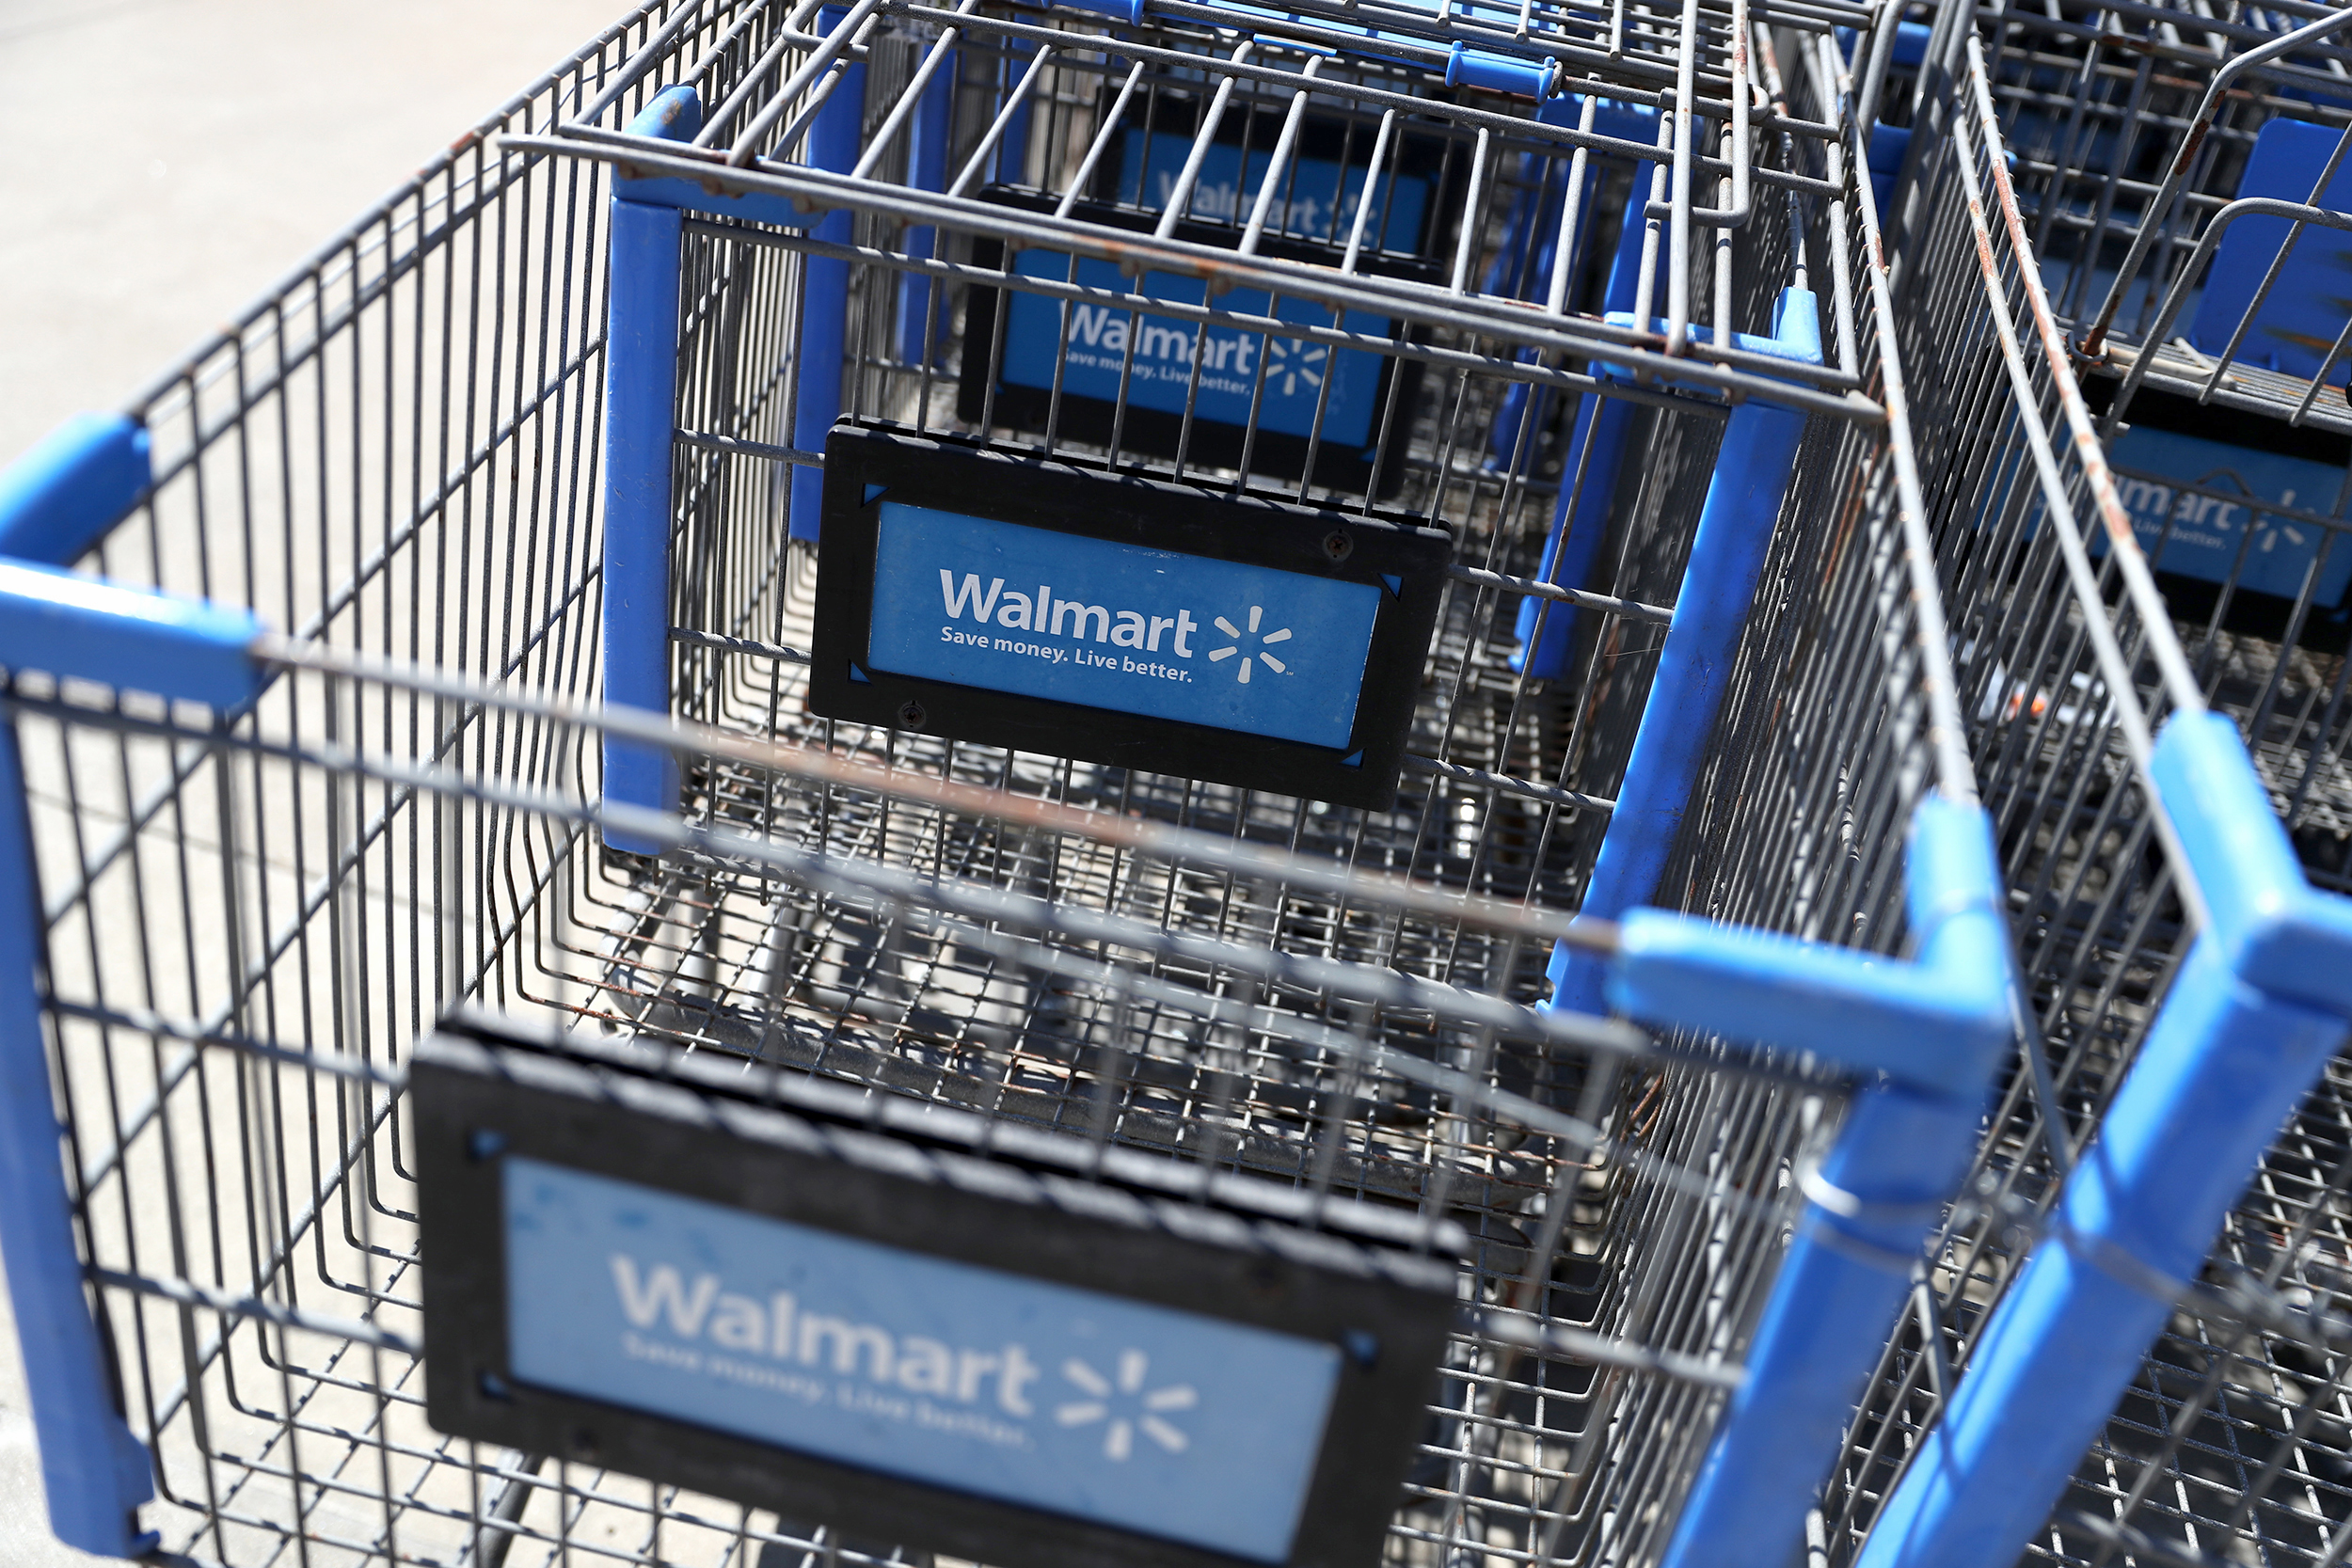 Walmart removes guns and ammo from shelves in some stores in response to Philadelphia protests